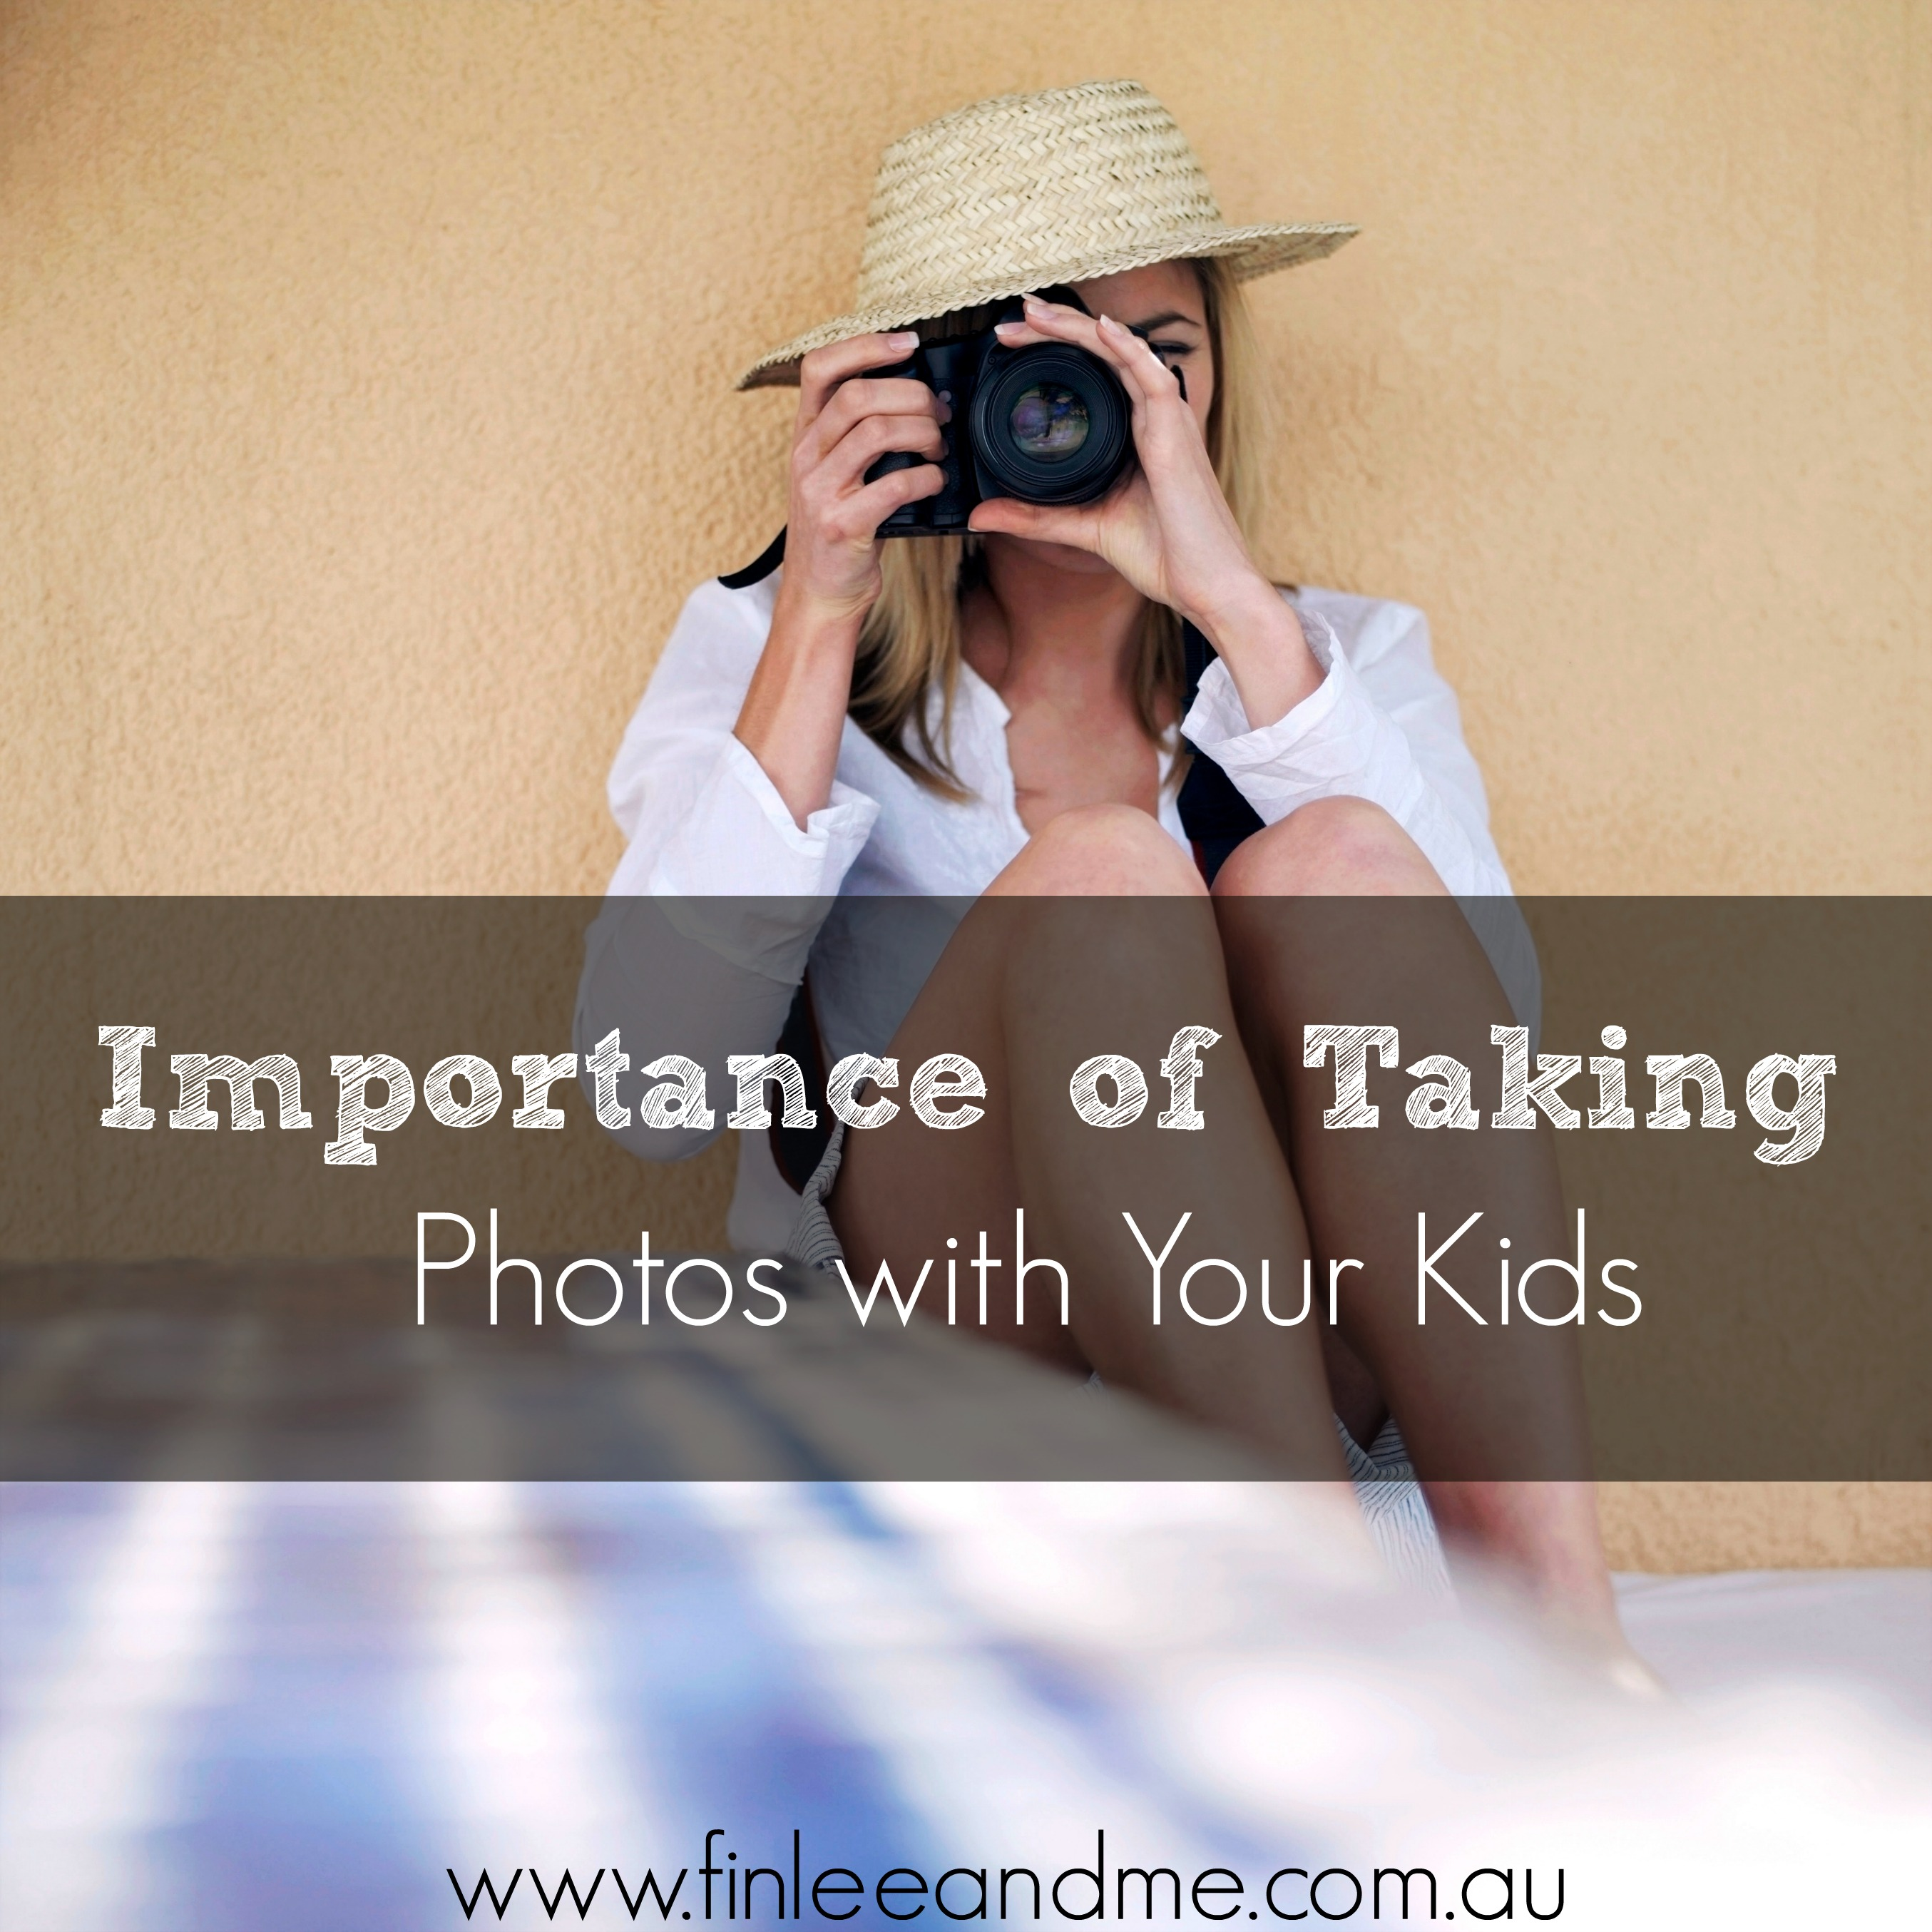 the-importance-of-taking-photos-with-your-kids